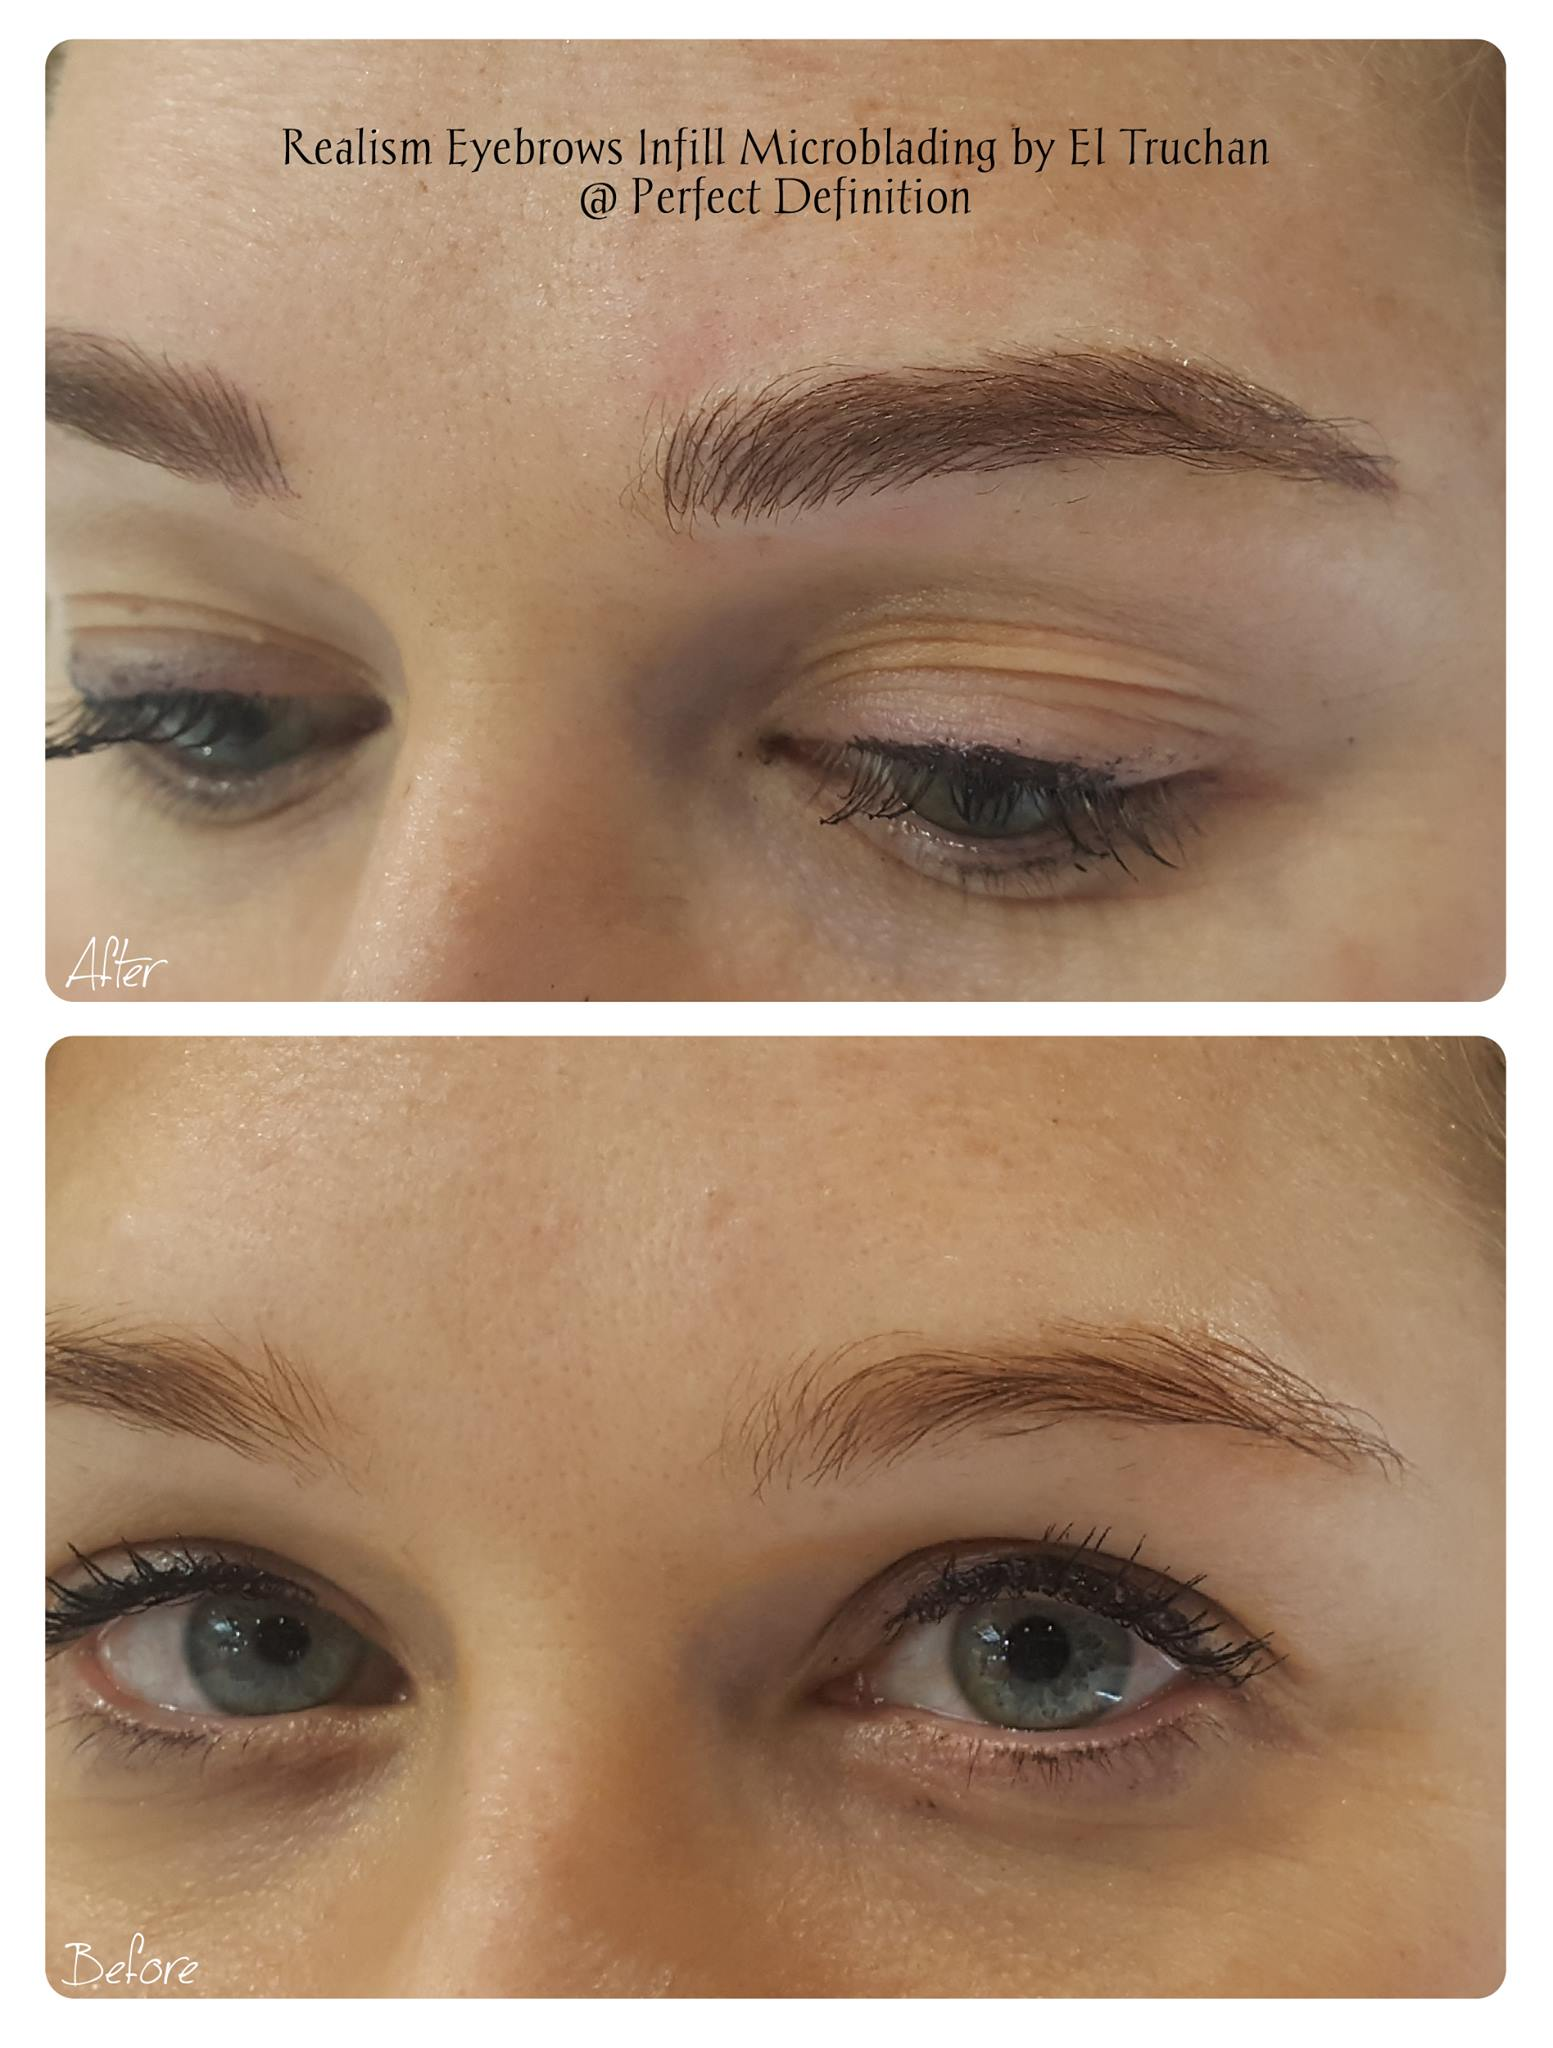 Realism Eyebrows by El Truchan